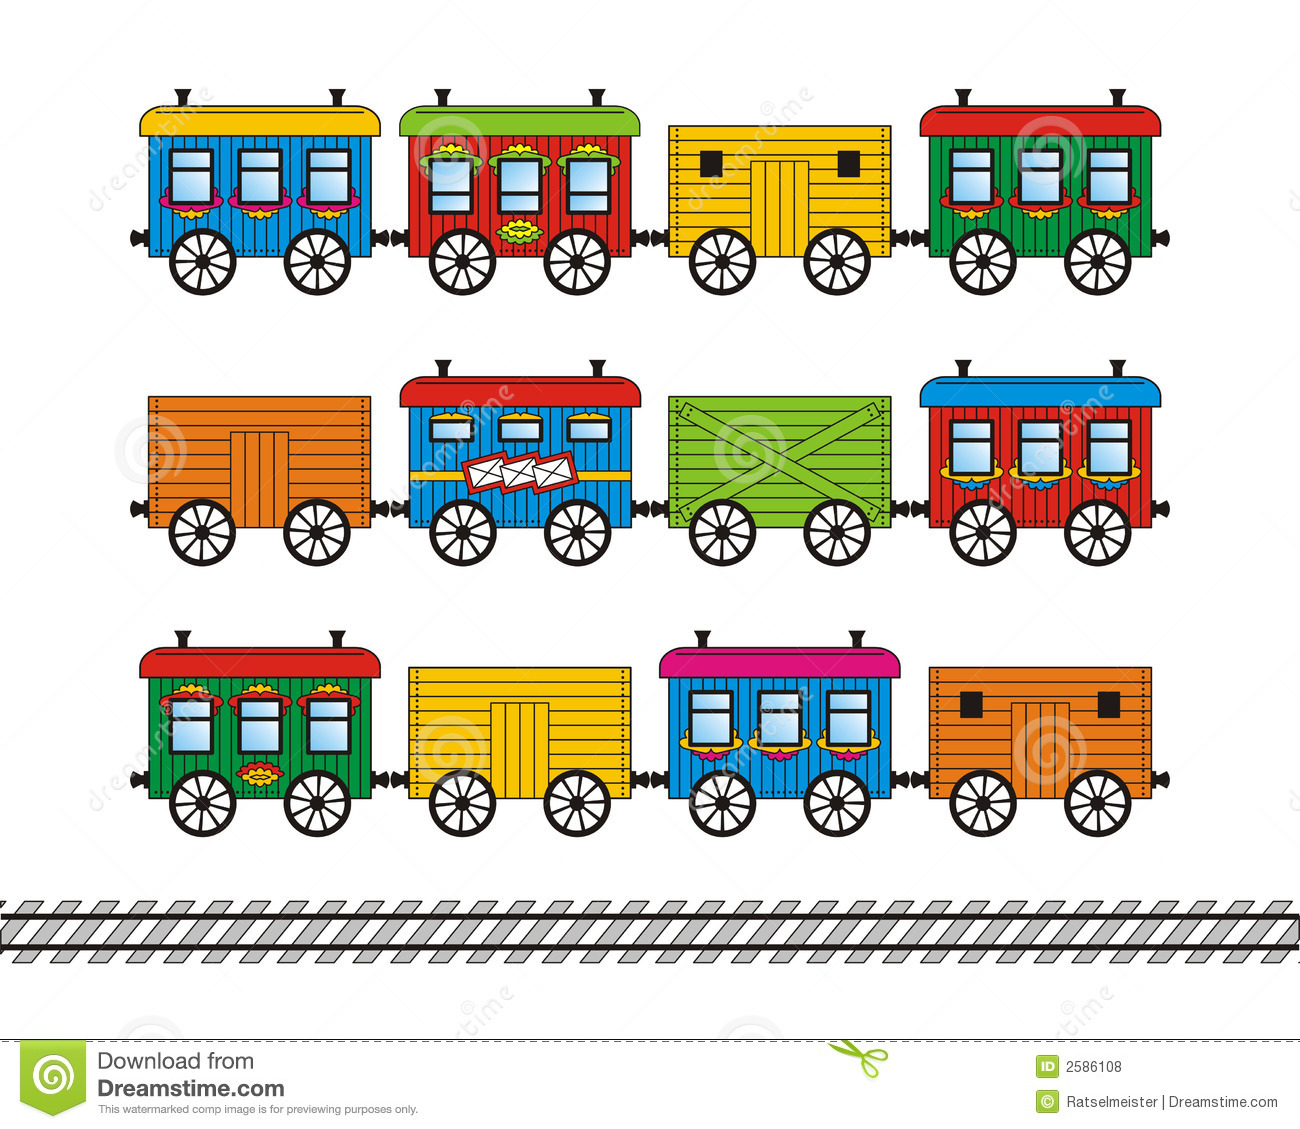 Train stock car clipart svg black and white download Toy Train Cars And Track Set Royalty Free Stock Photos - Image ... svg black and white download